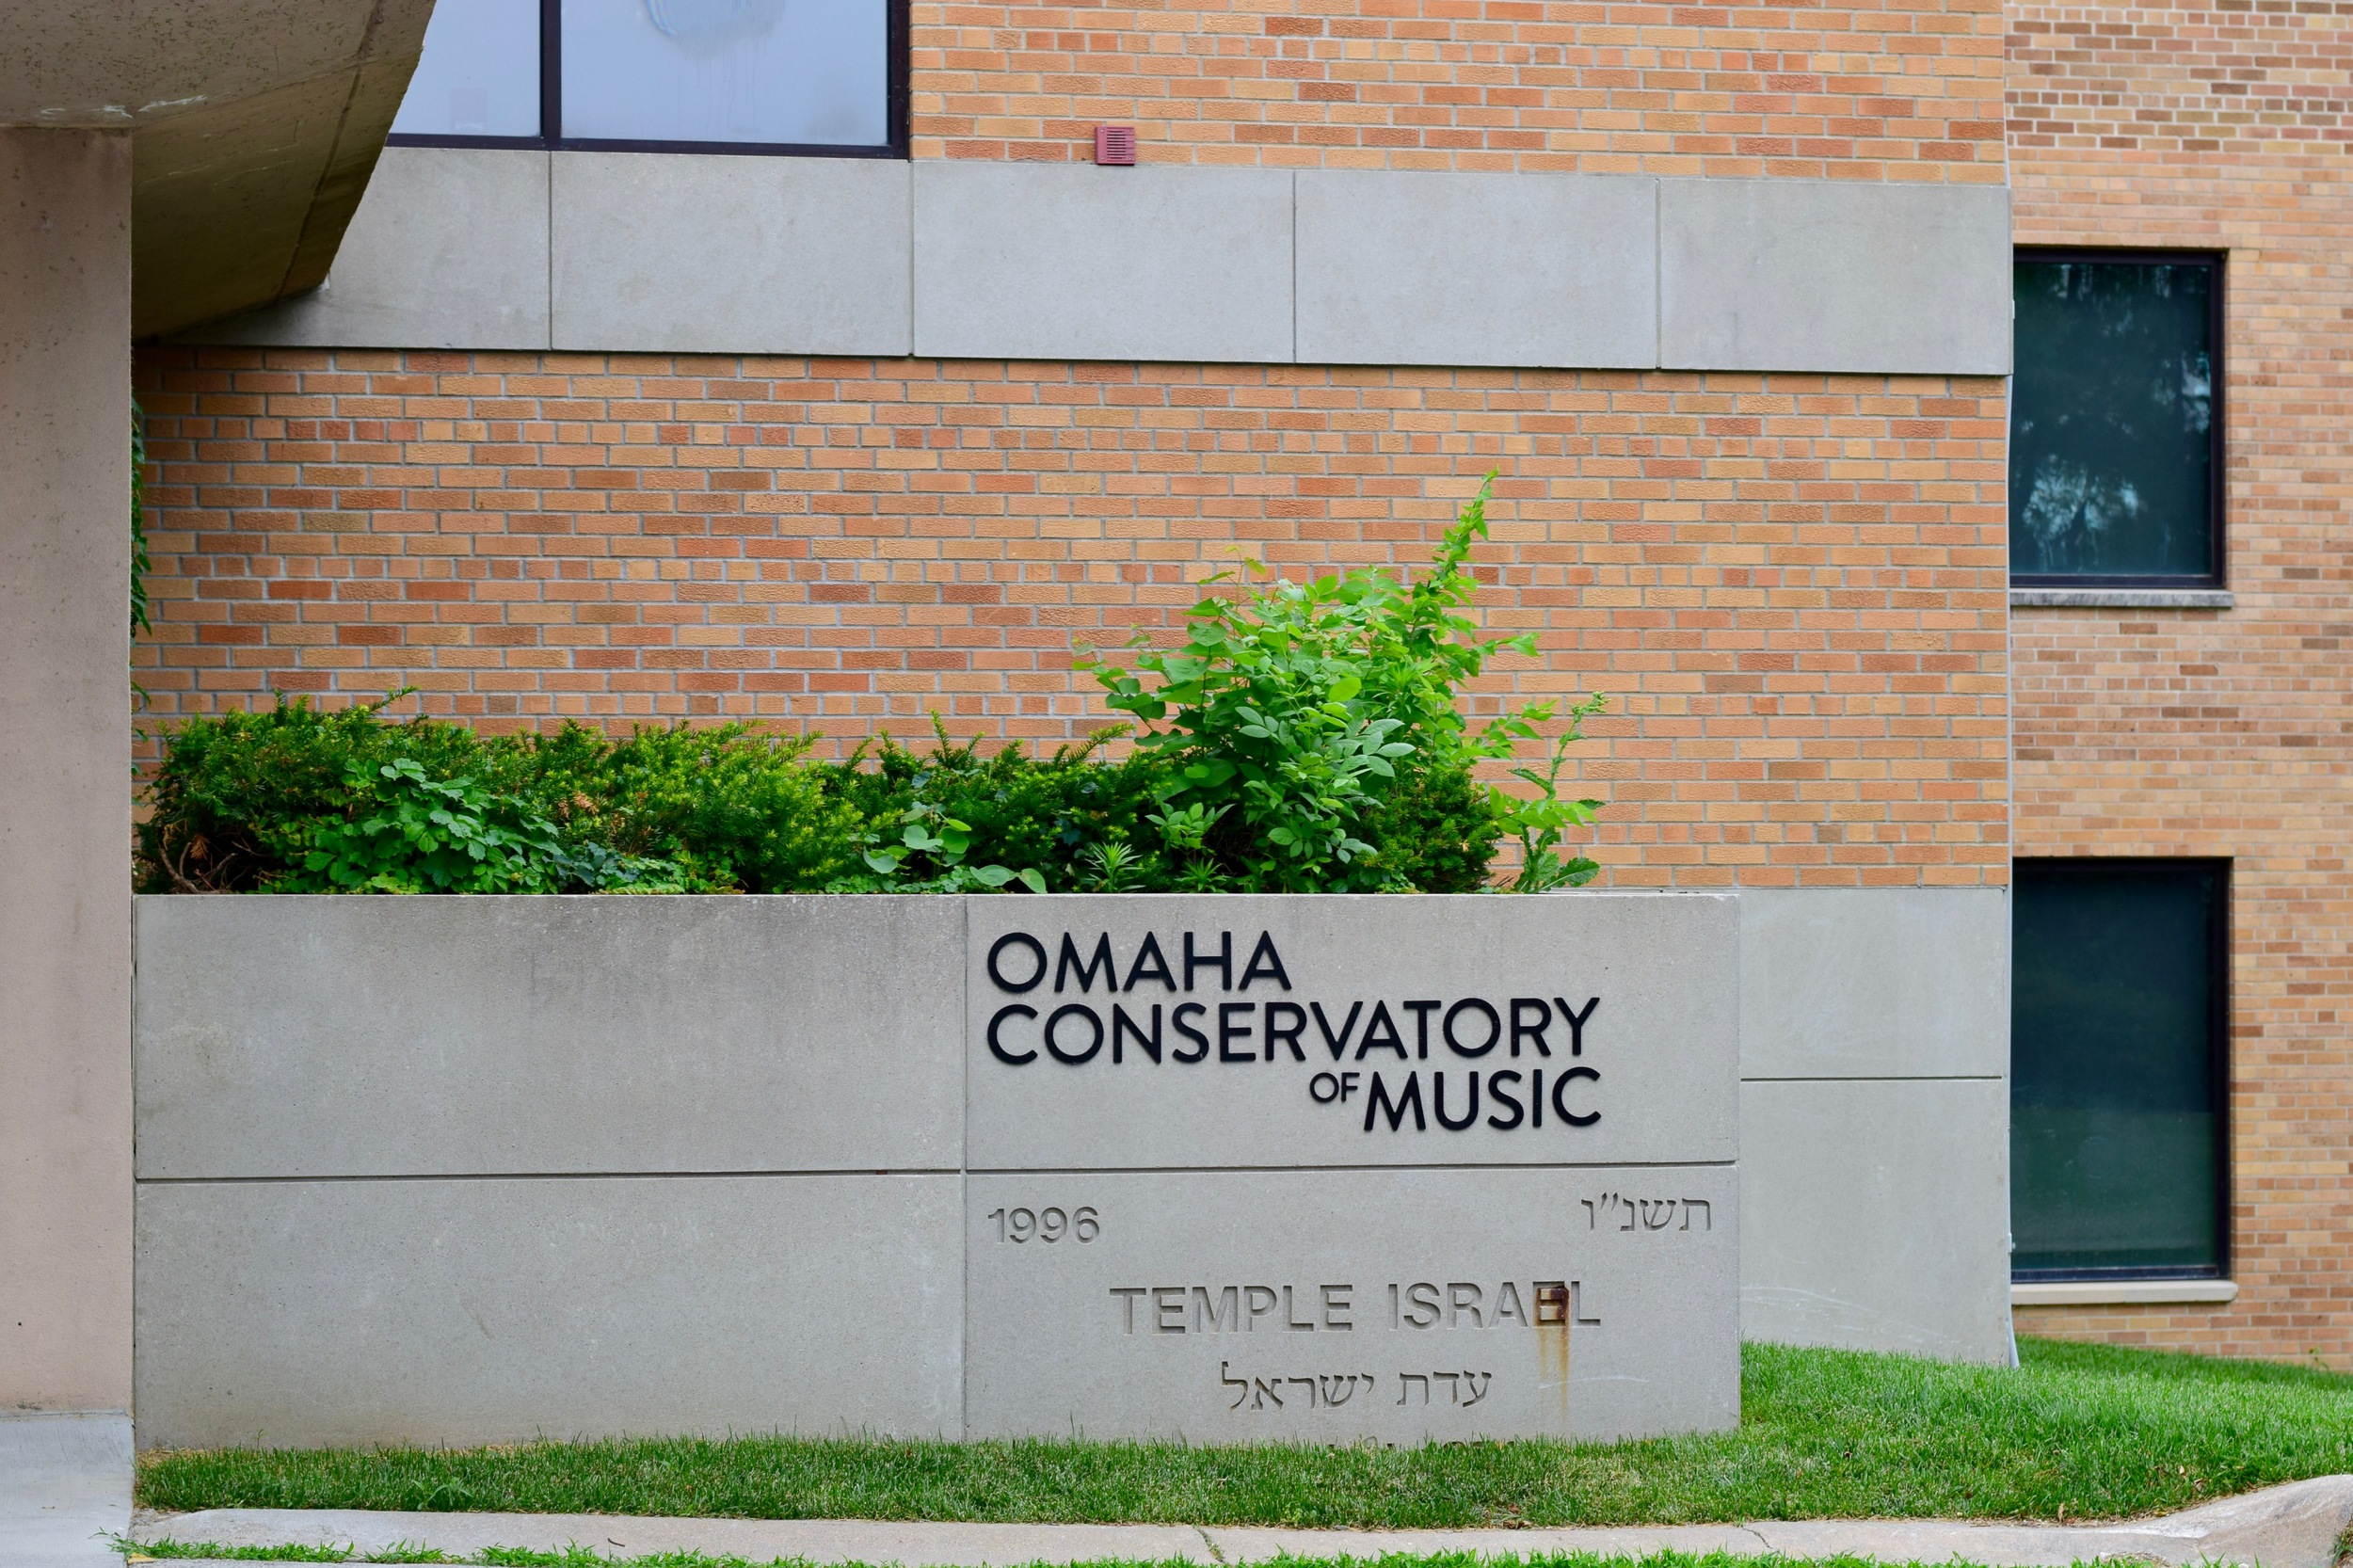 Omaha Conservatory of Music integrates the history of the building